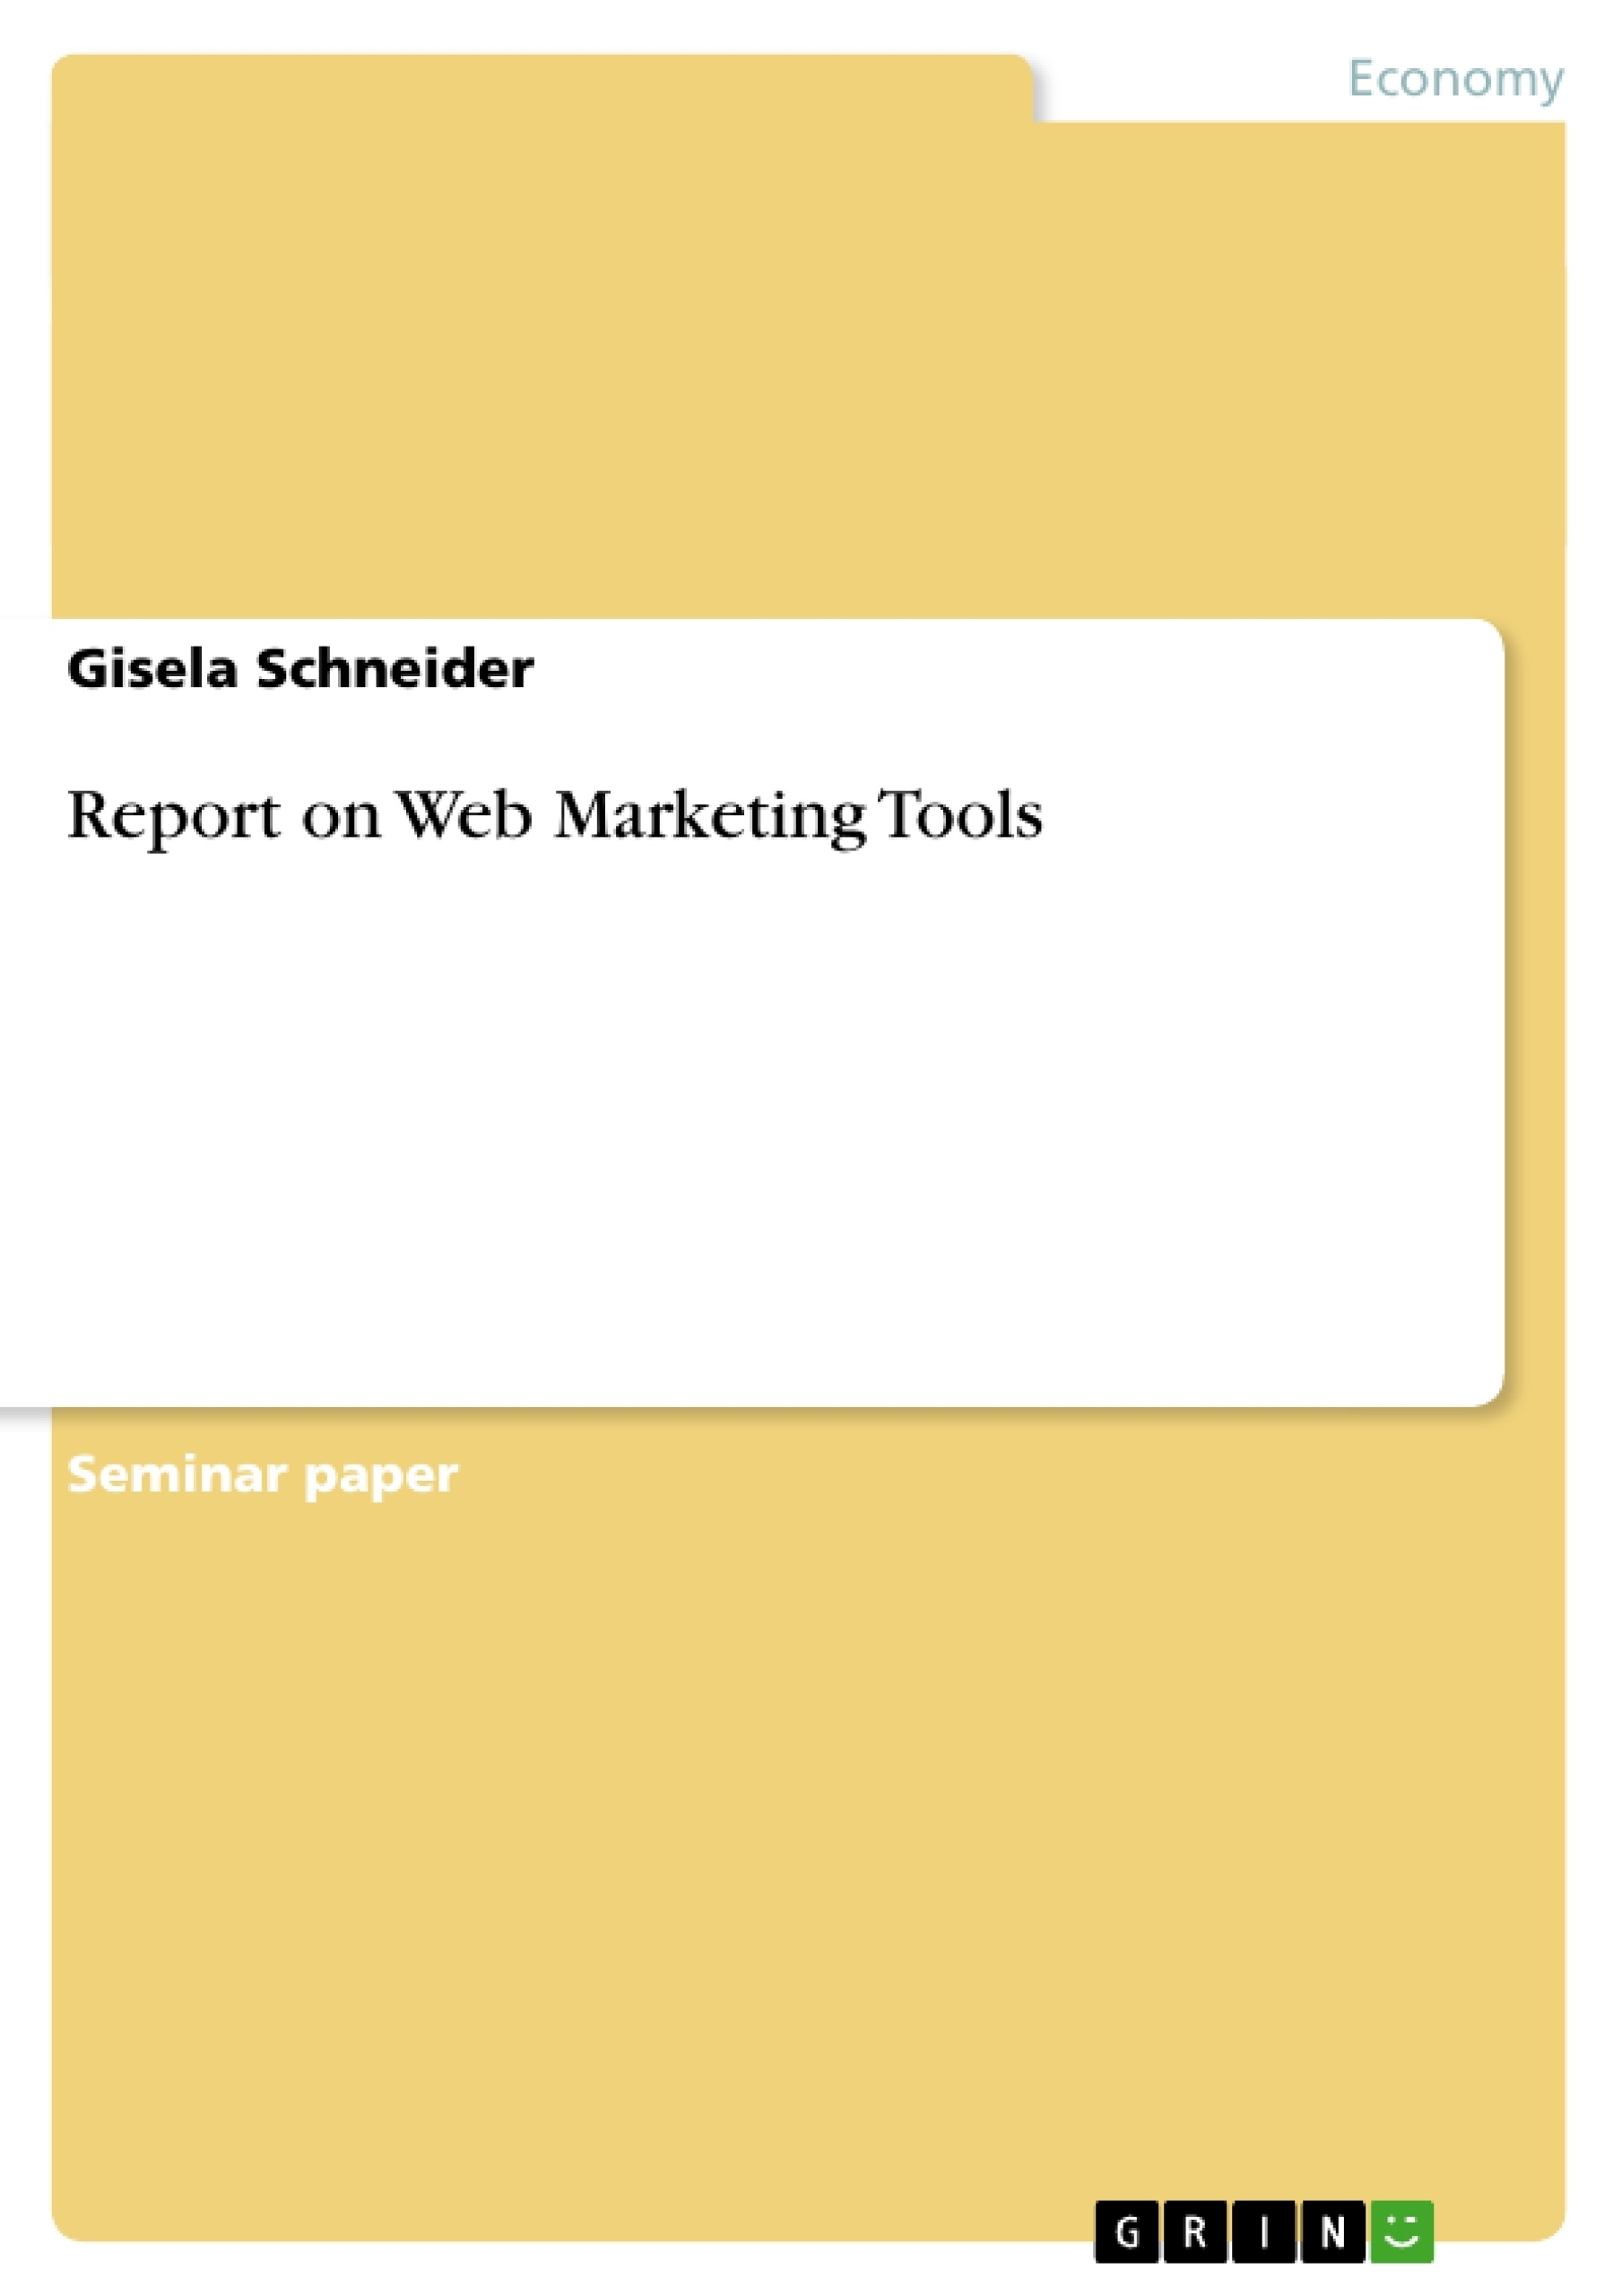 Title: Report on Web Marketing Tools